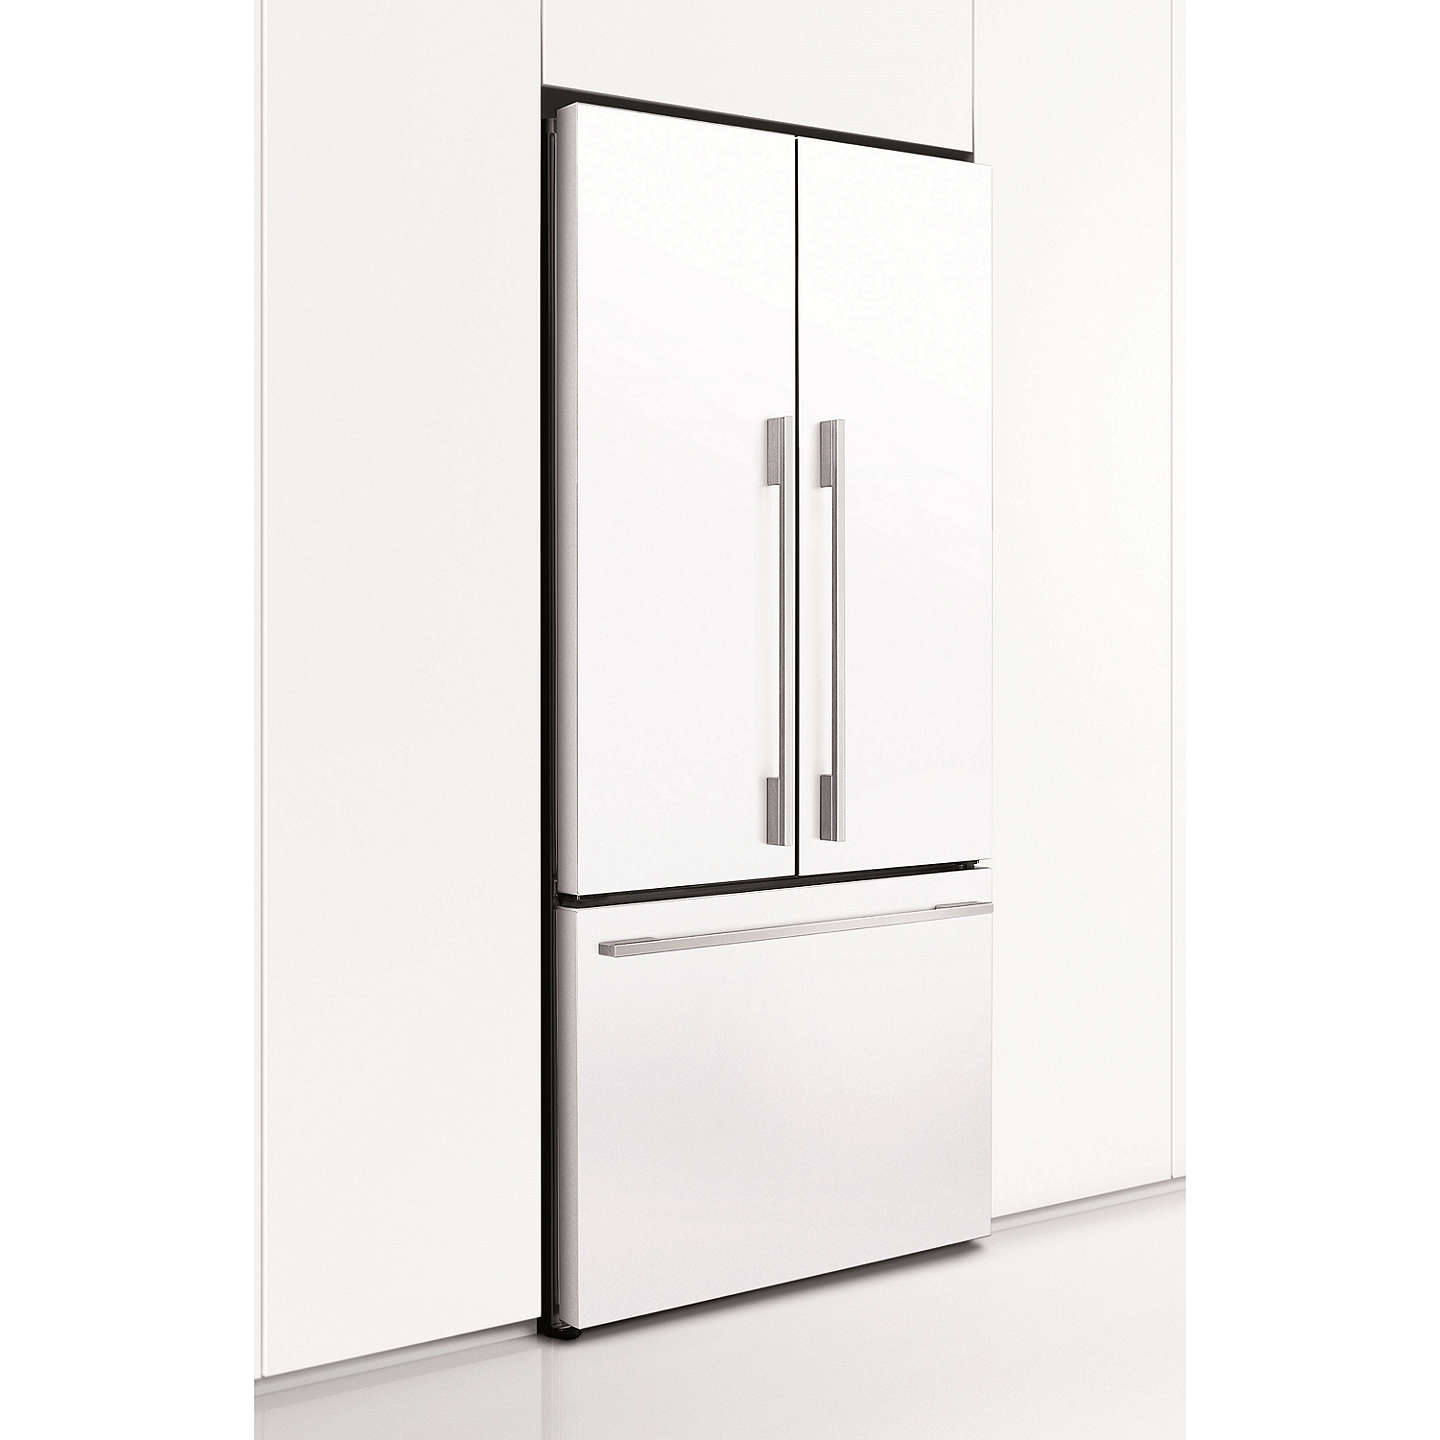 BuyFisher & Paykel RF522ADW4 Fridge Freezer, A+ Energy Rating, 79cm Wide, White Online at johnlewis.com